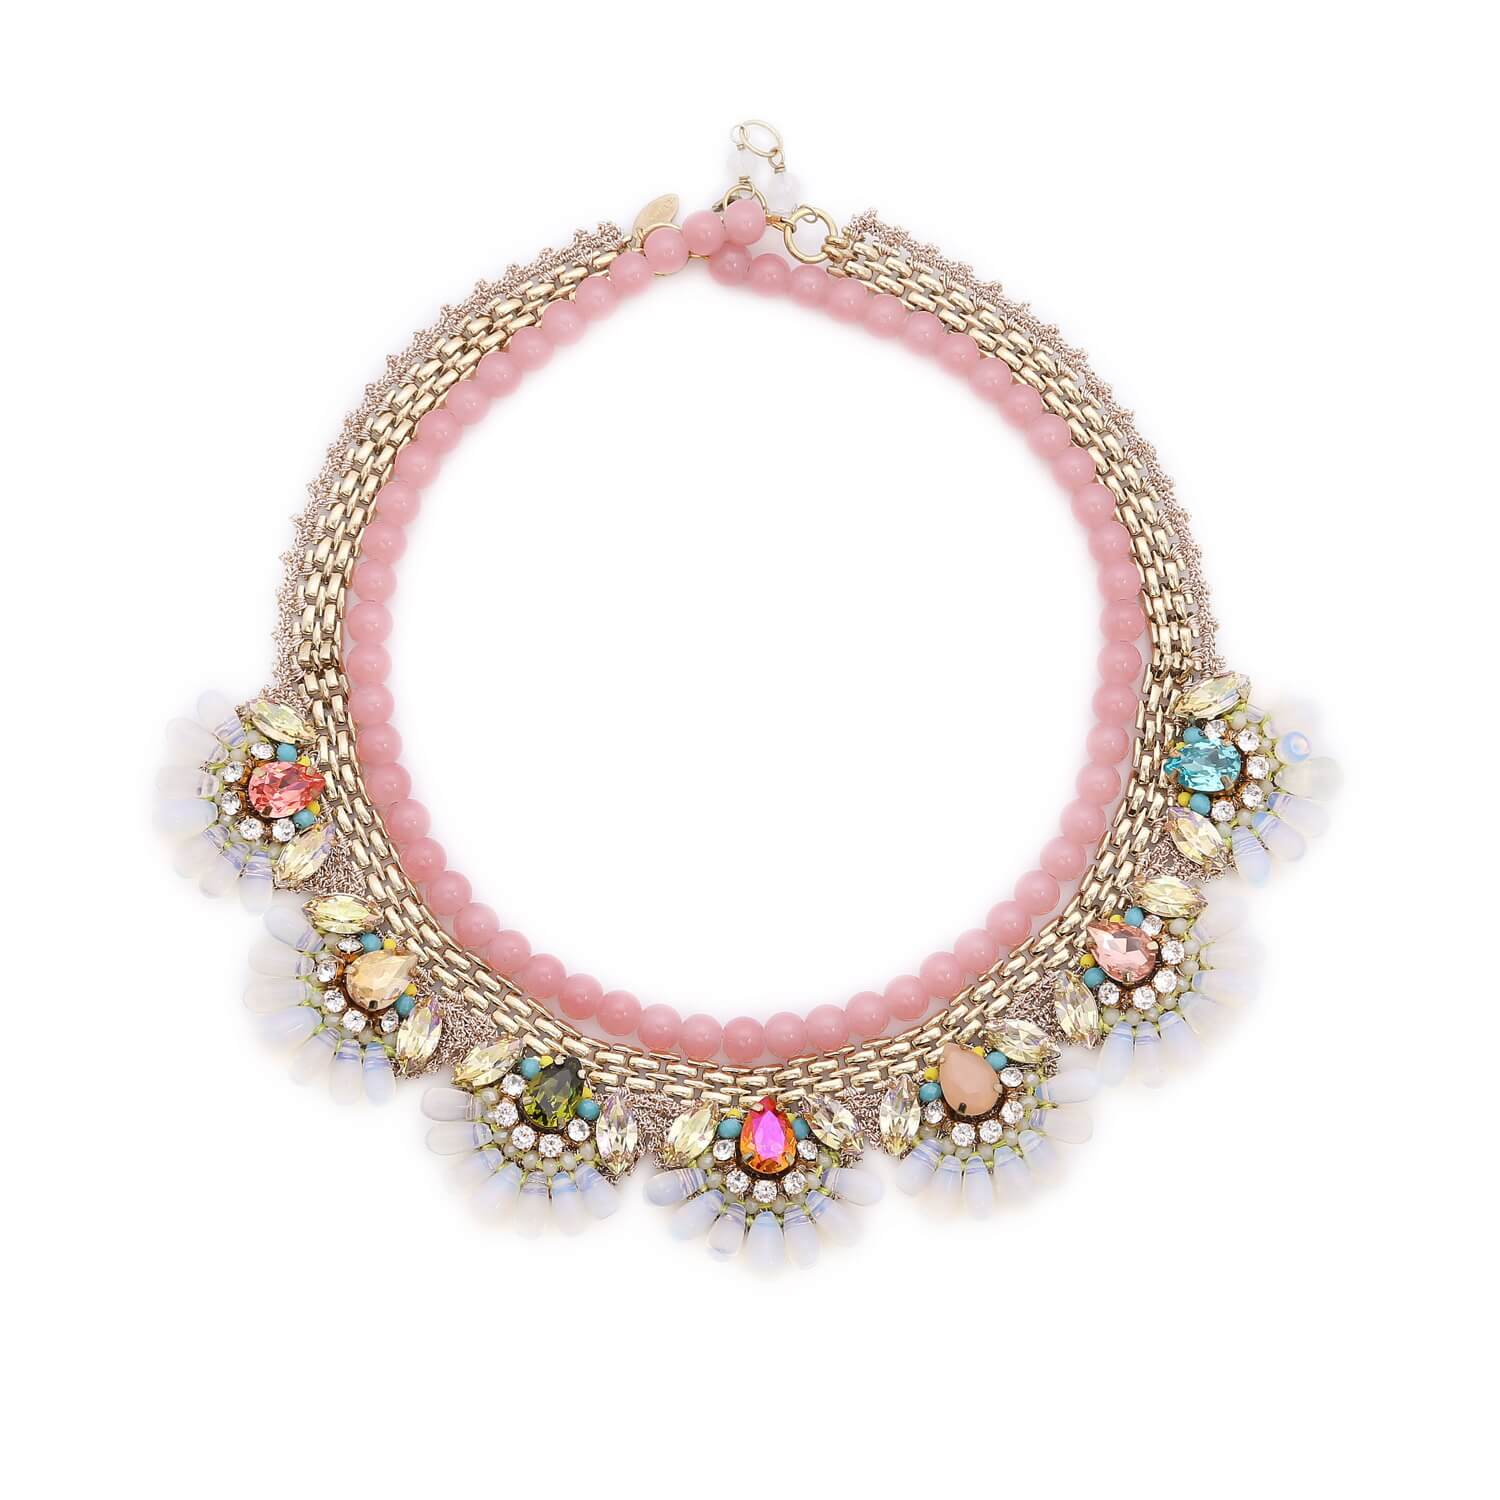 Aphrodite String of Pearls Mermaid Necklace - Blush Multi-Colour